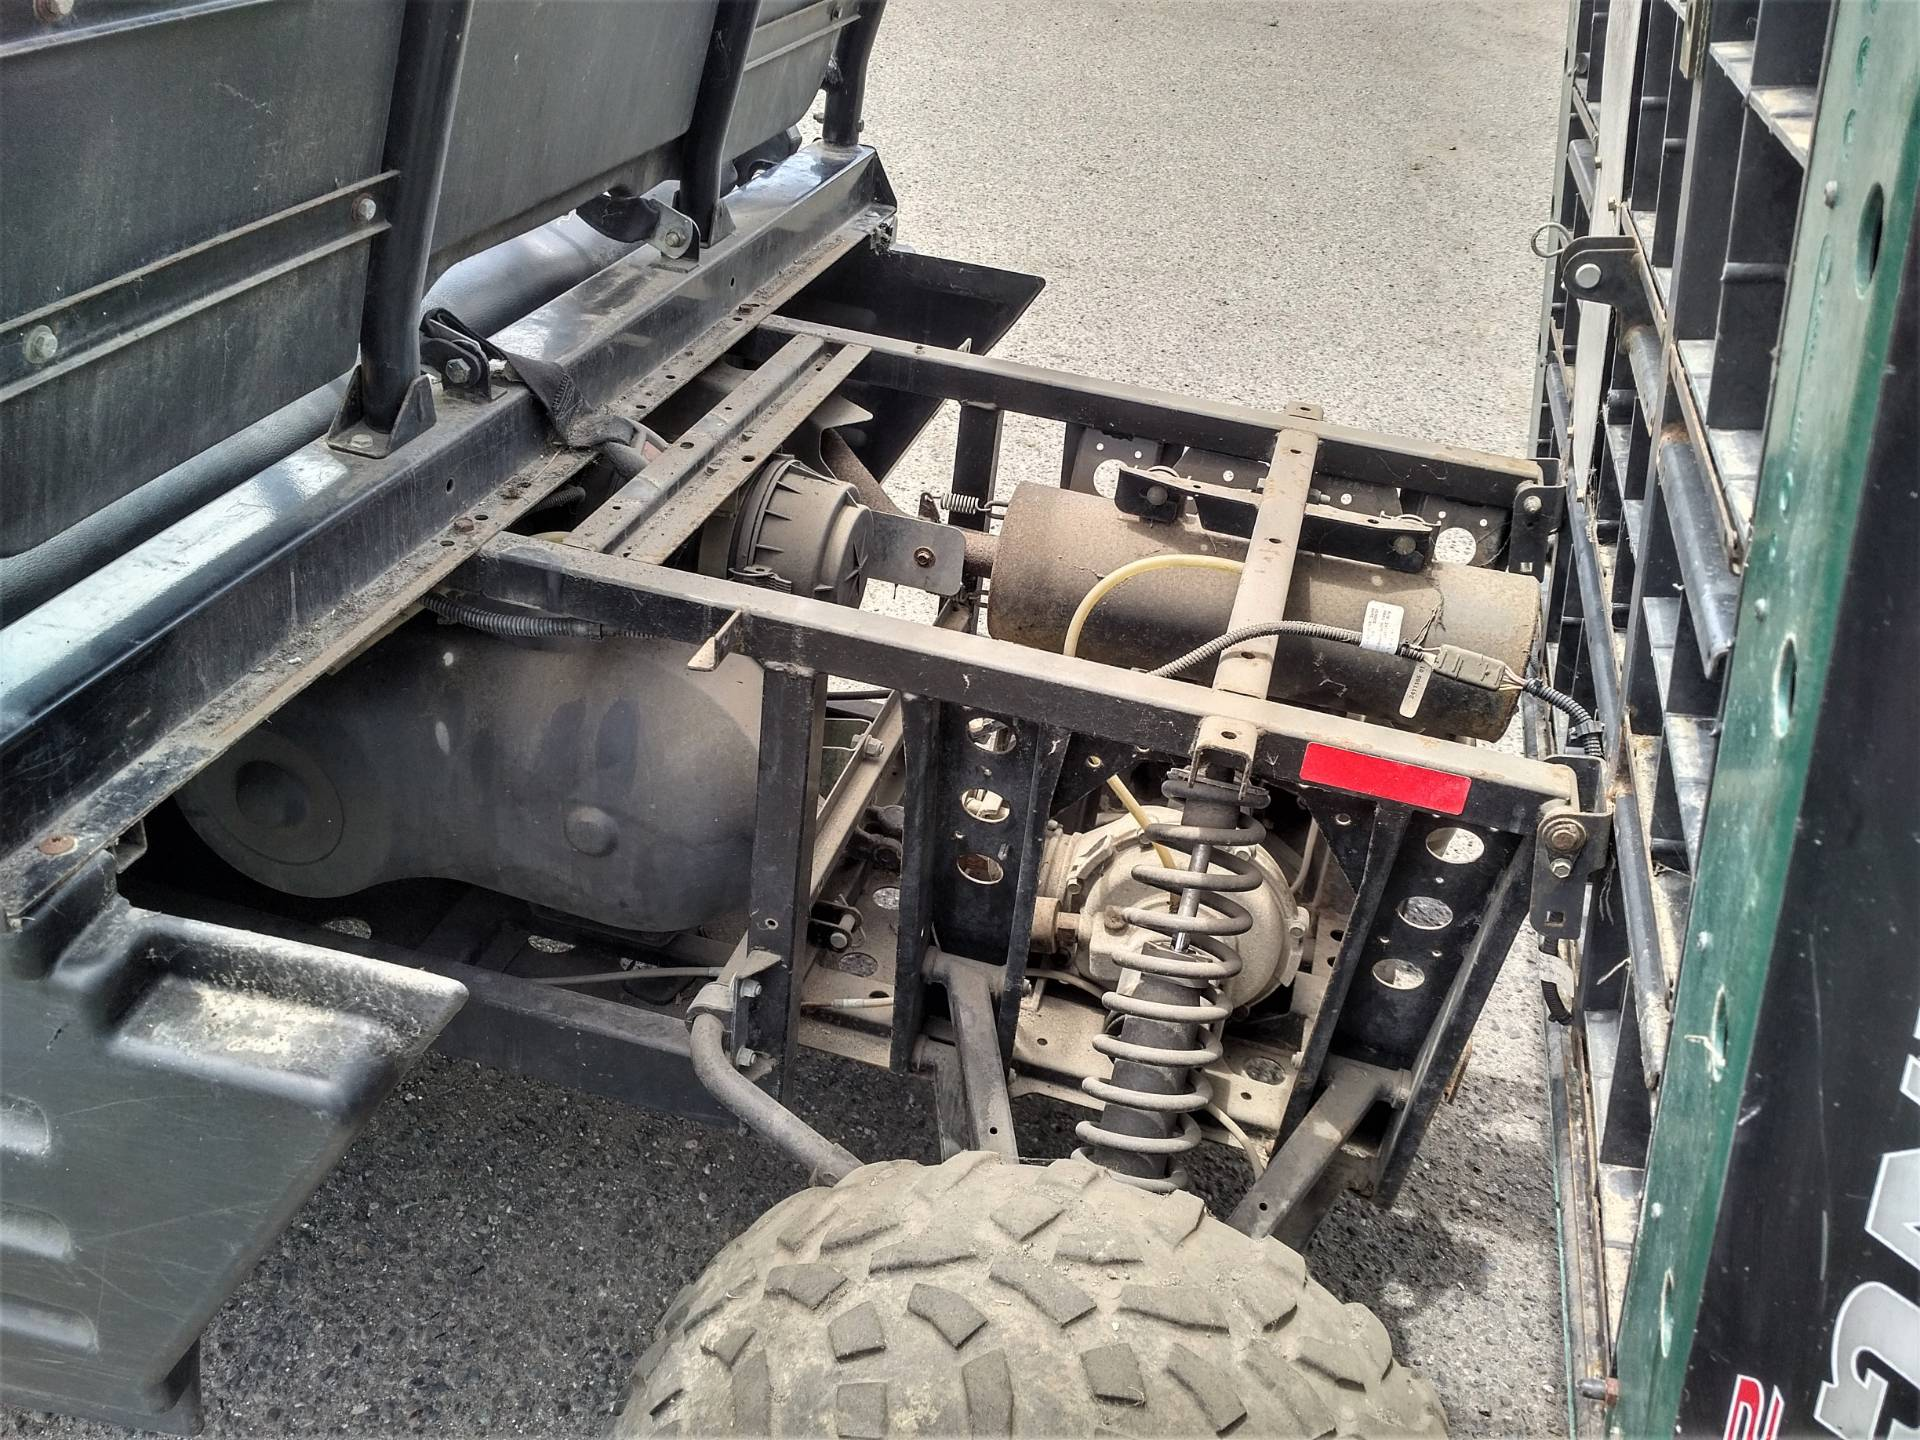 2009 Polaris Ranger™ 2x4 in Salinas, California - Photo 16